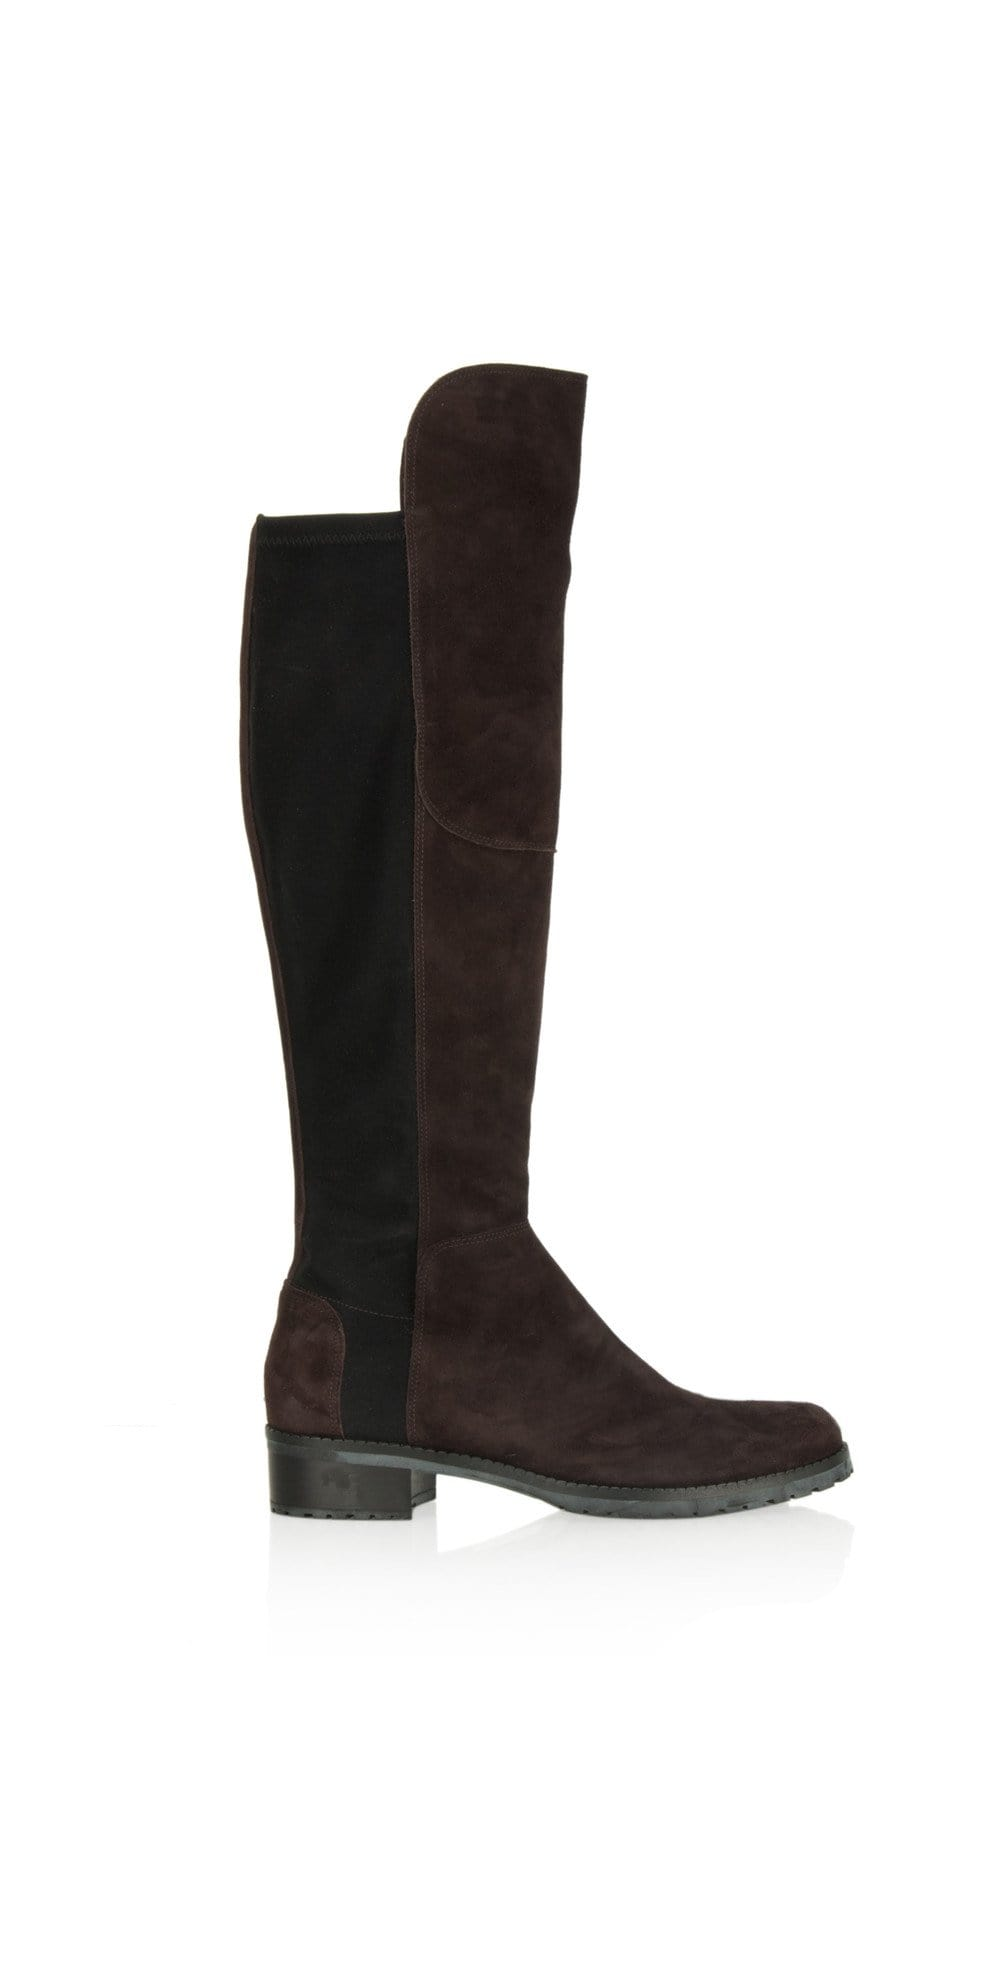 Kennel & Schmenger Shoes Kennel & Schmenger Blues Long Flat Boots in Mocca Suede 81-24160-502 izzi-of-baslow